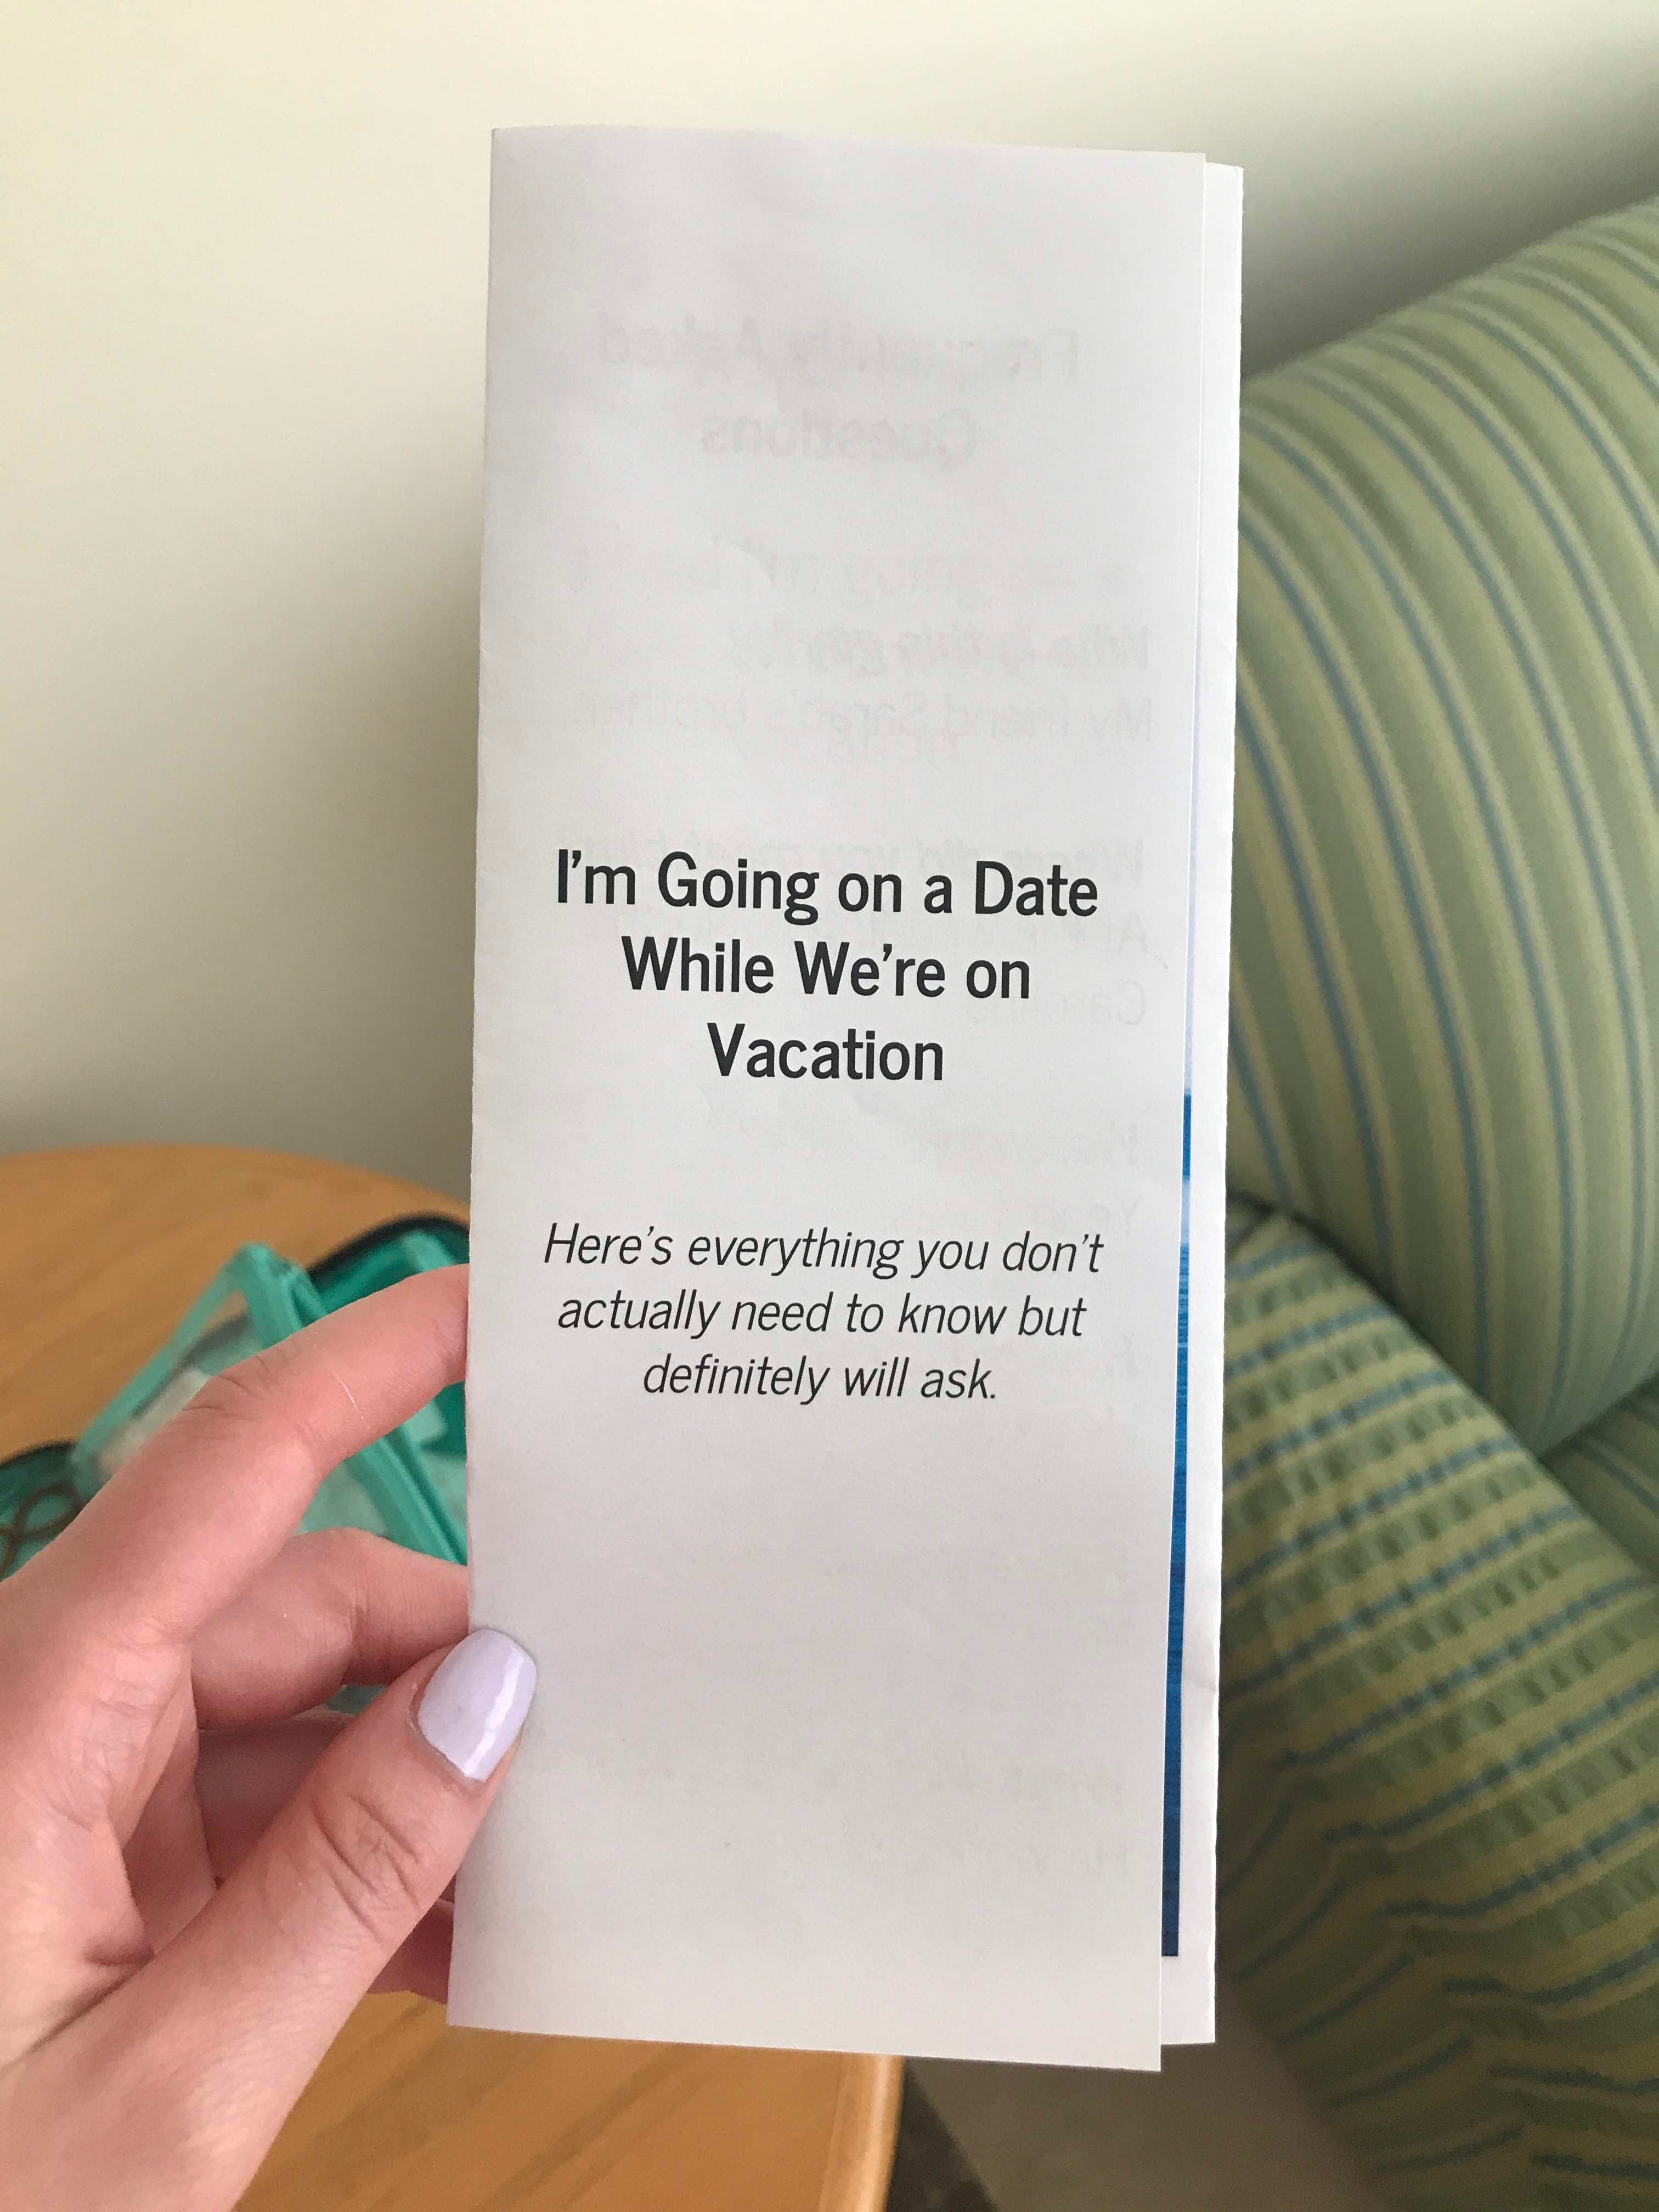 Barone made a very comprehensive brochure to answer all of her family's burning questions.